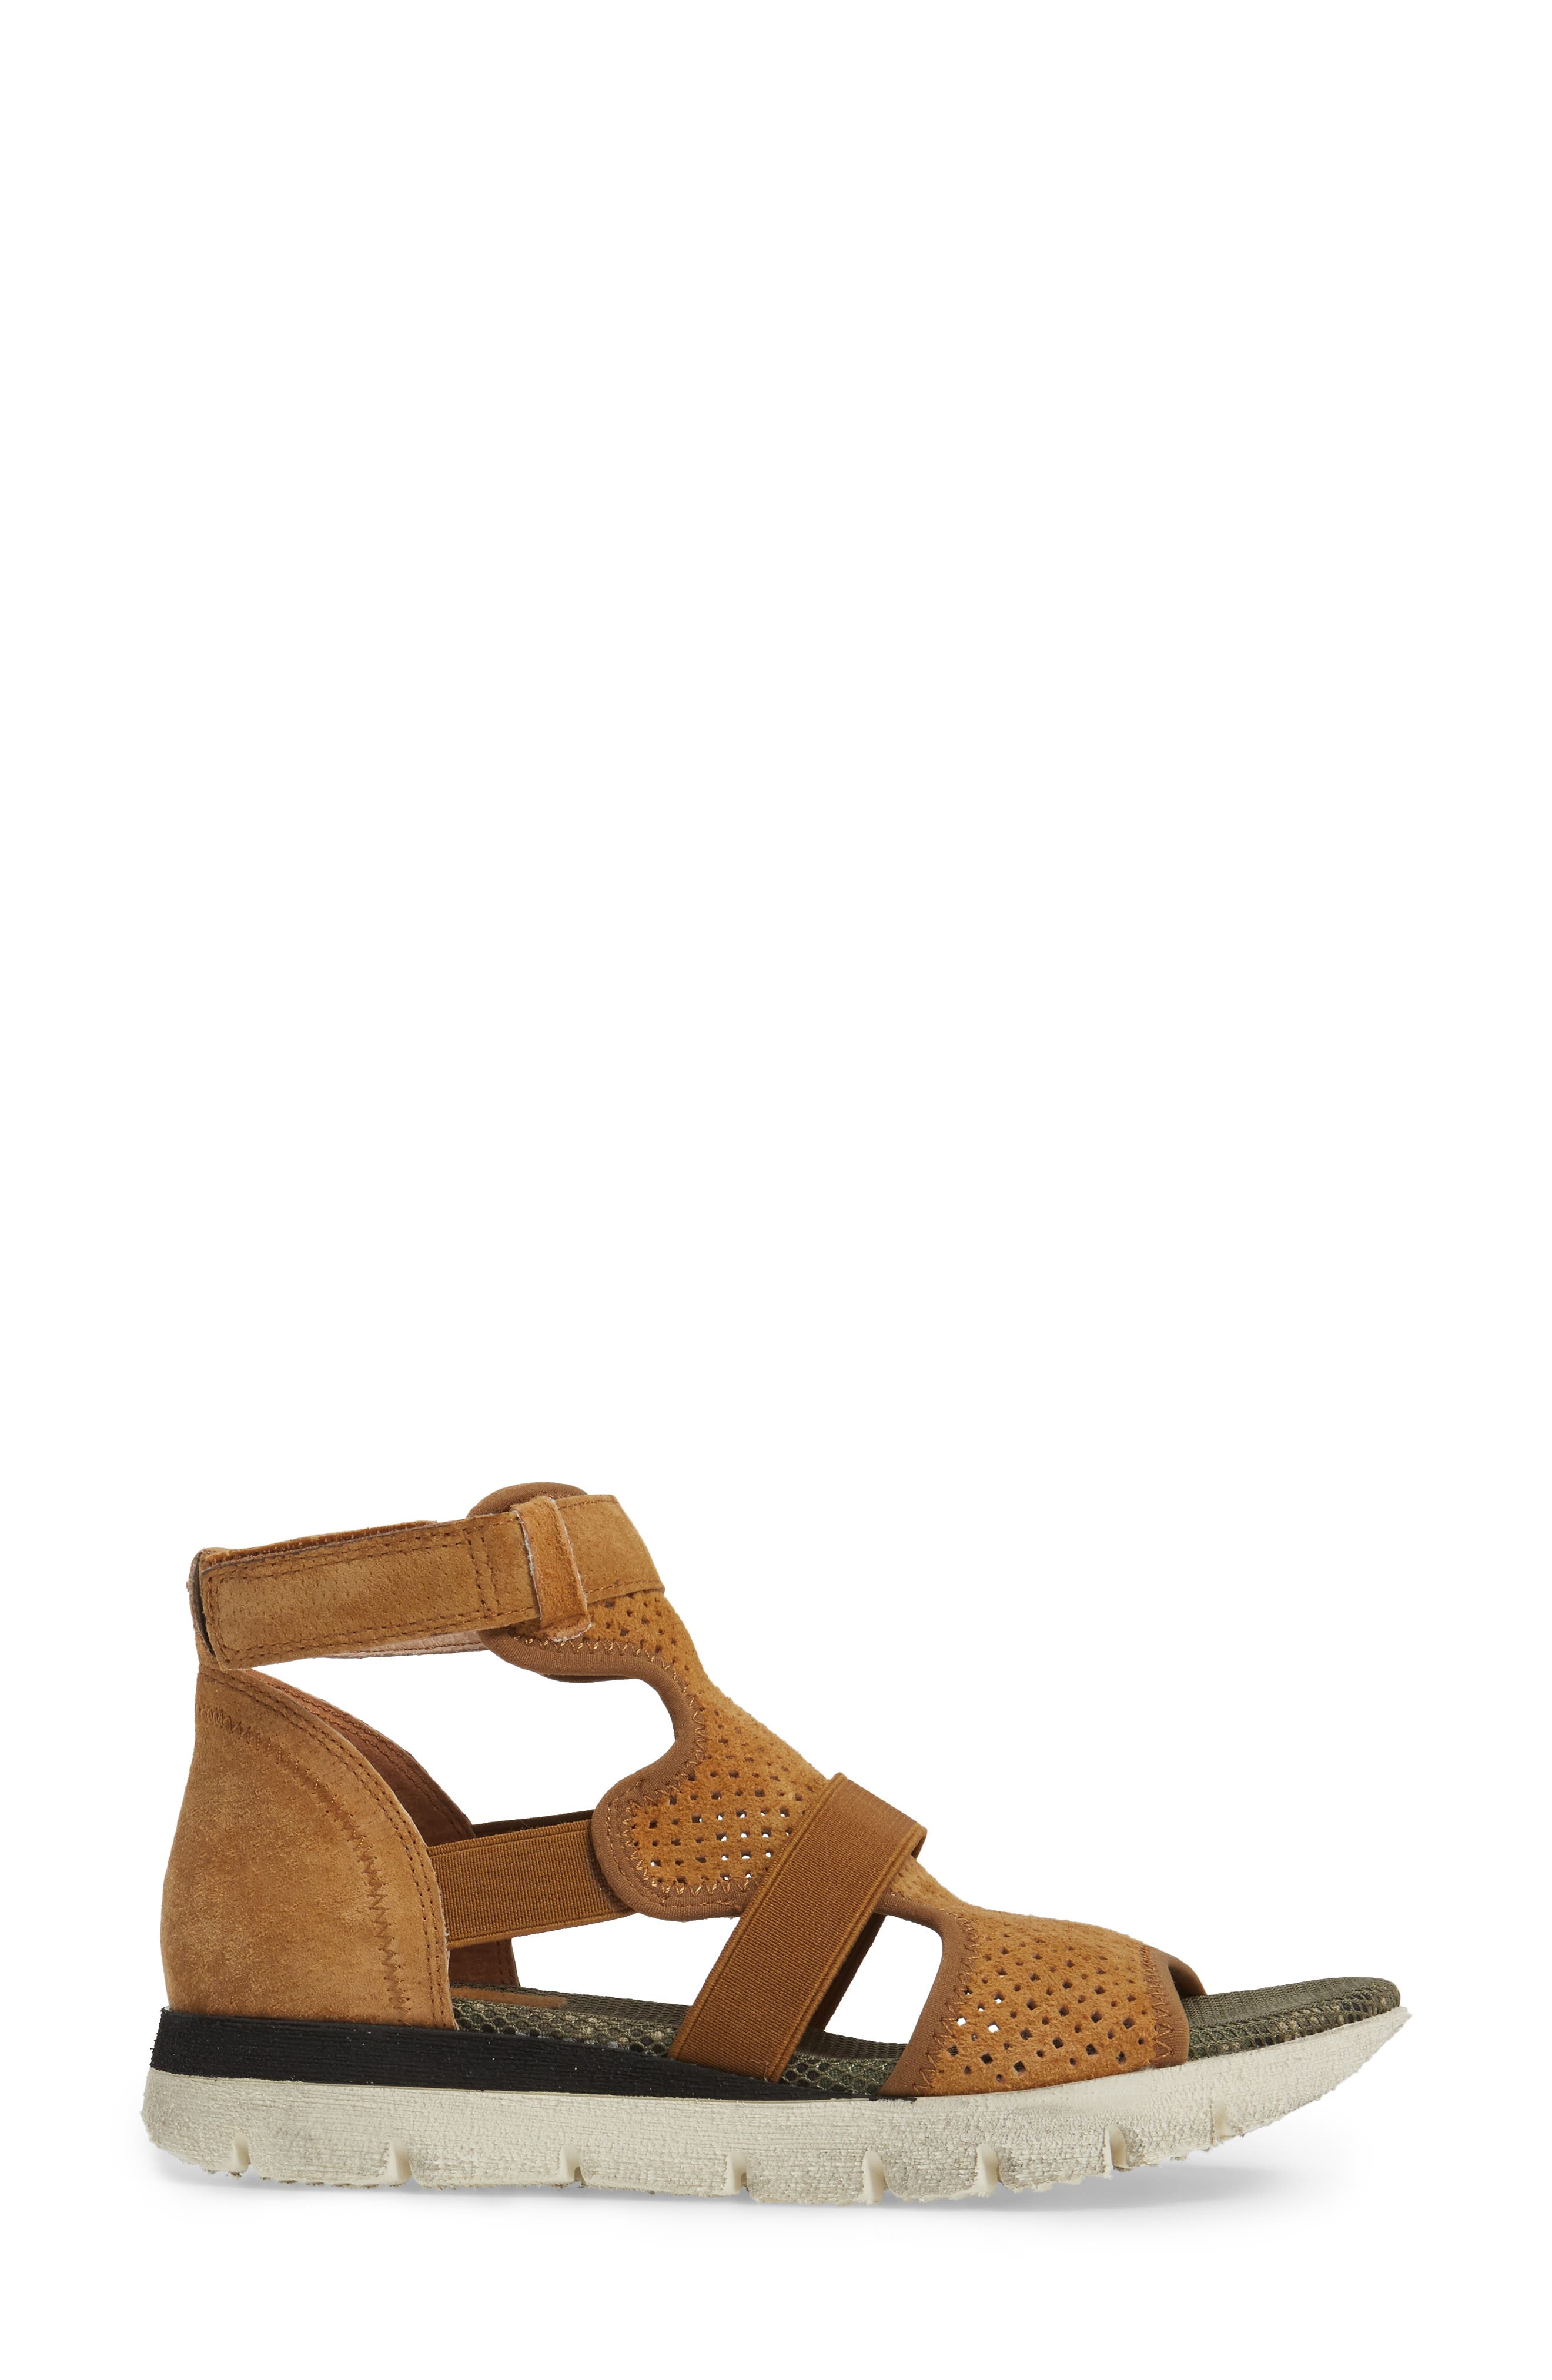 Astro Perforated Gladiator Sandal,                             Alternate thumbnail 9, color,